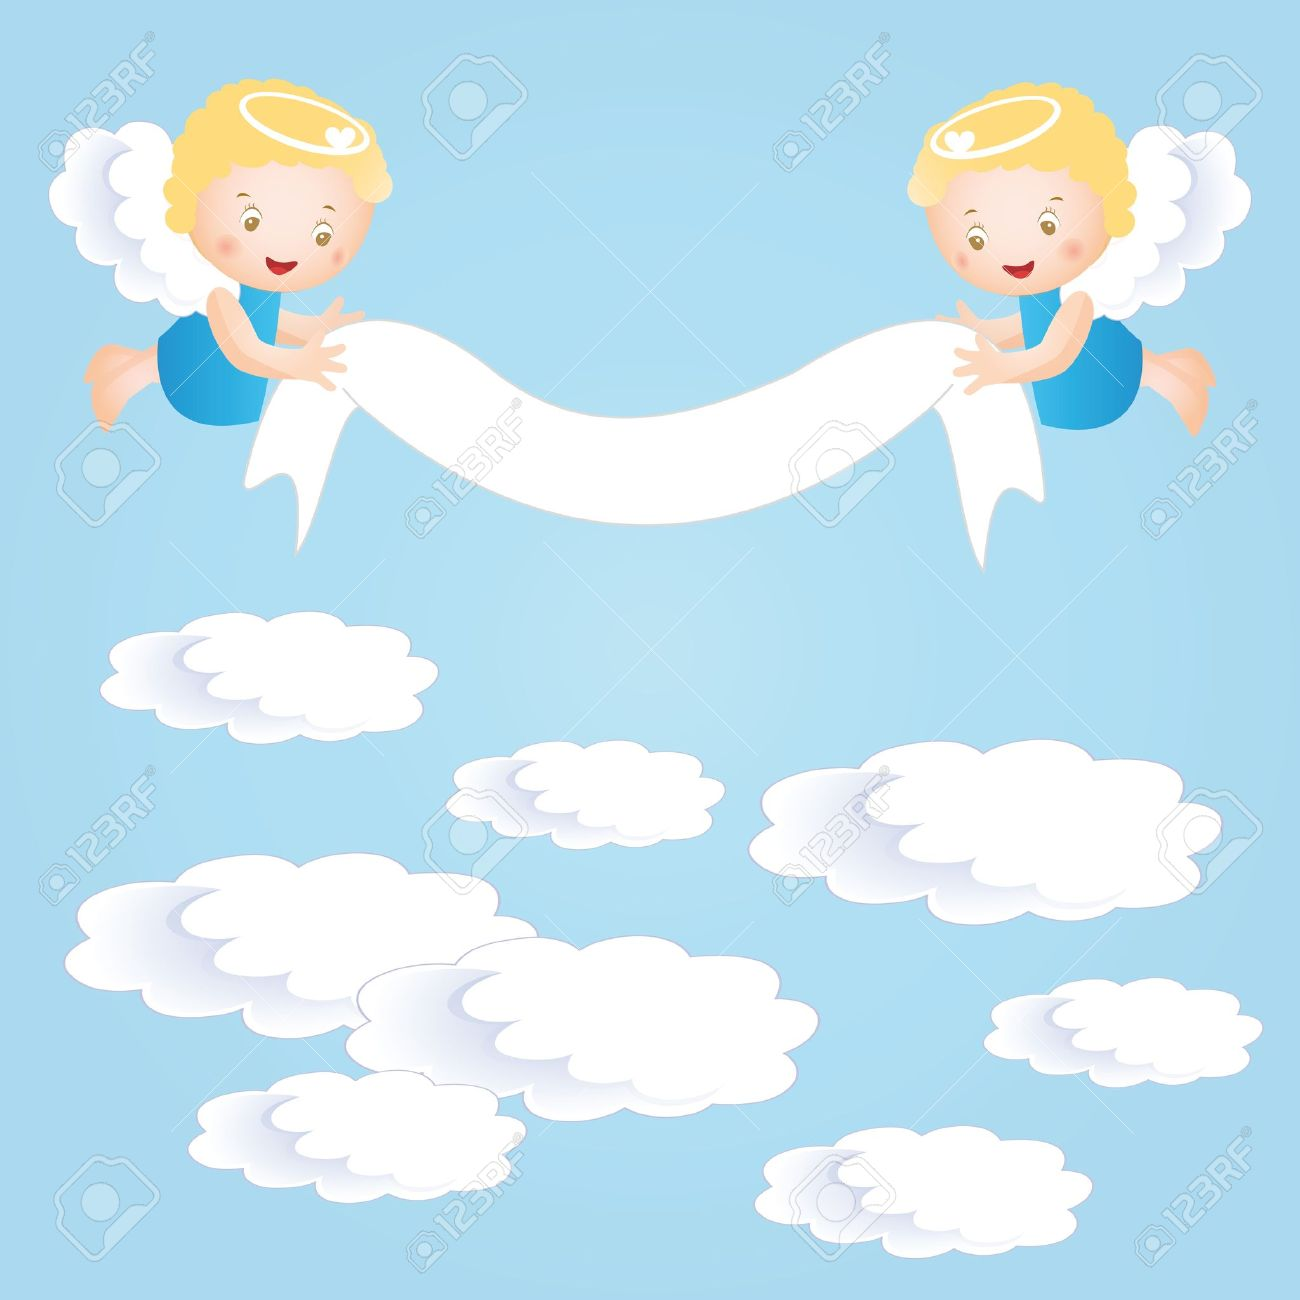 Baby Baptism Background With Small Angel Stock Vector